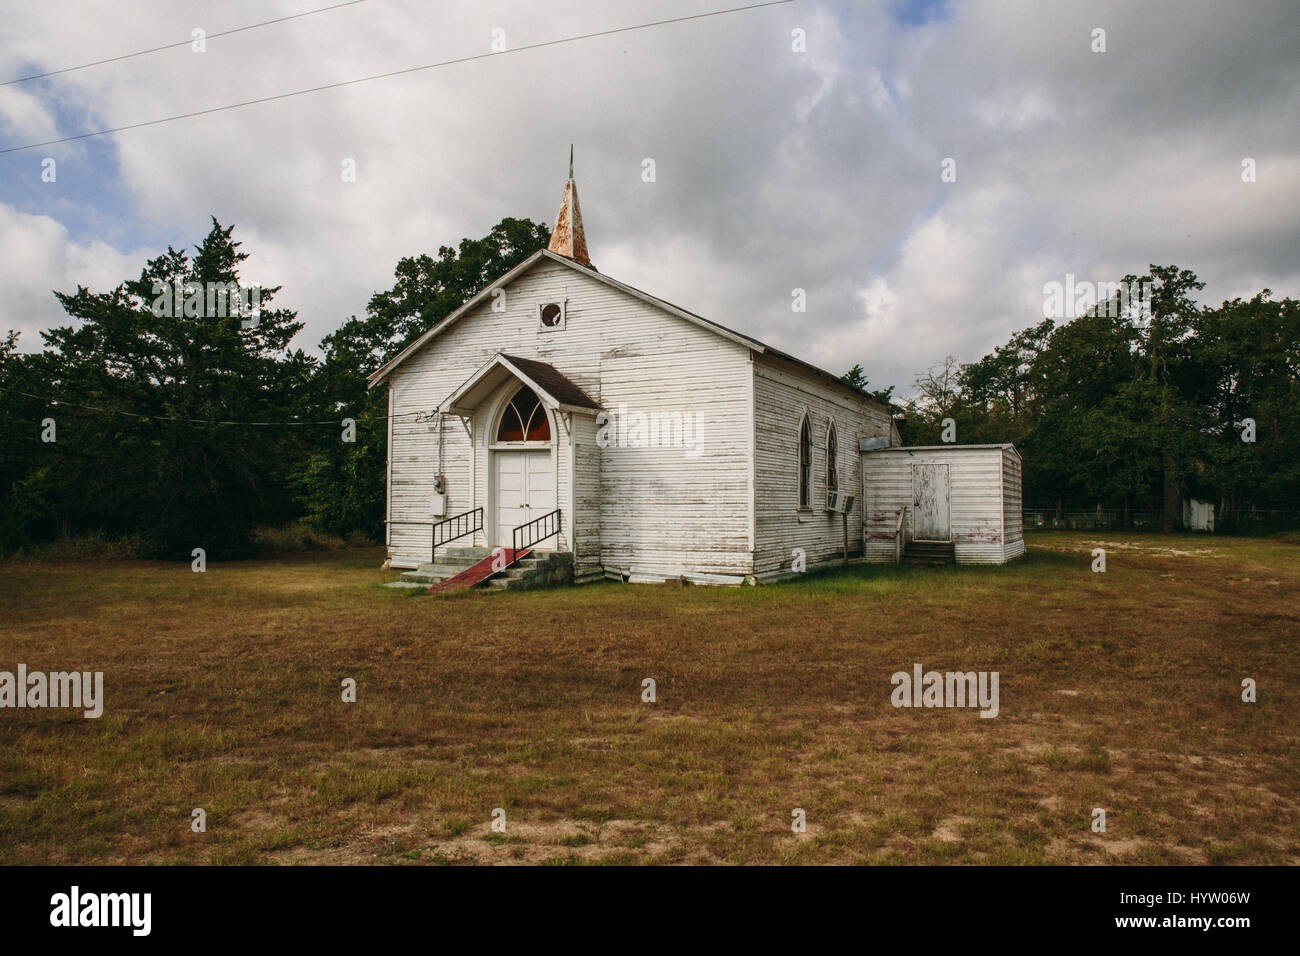 Decrepit Church in Texas, USA - Stock Image